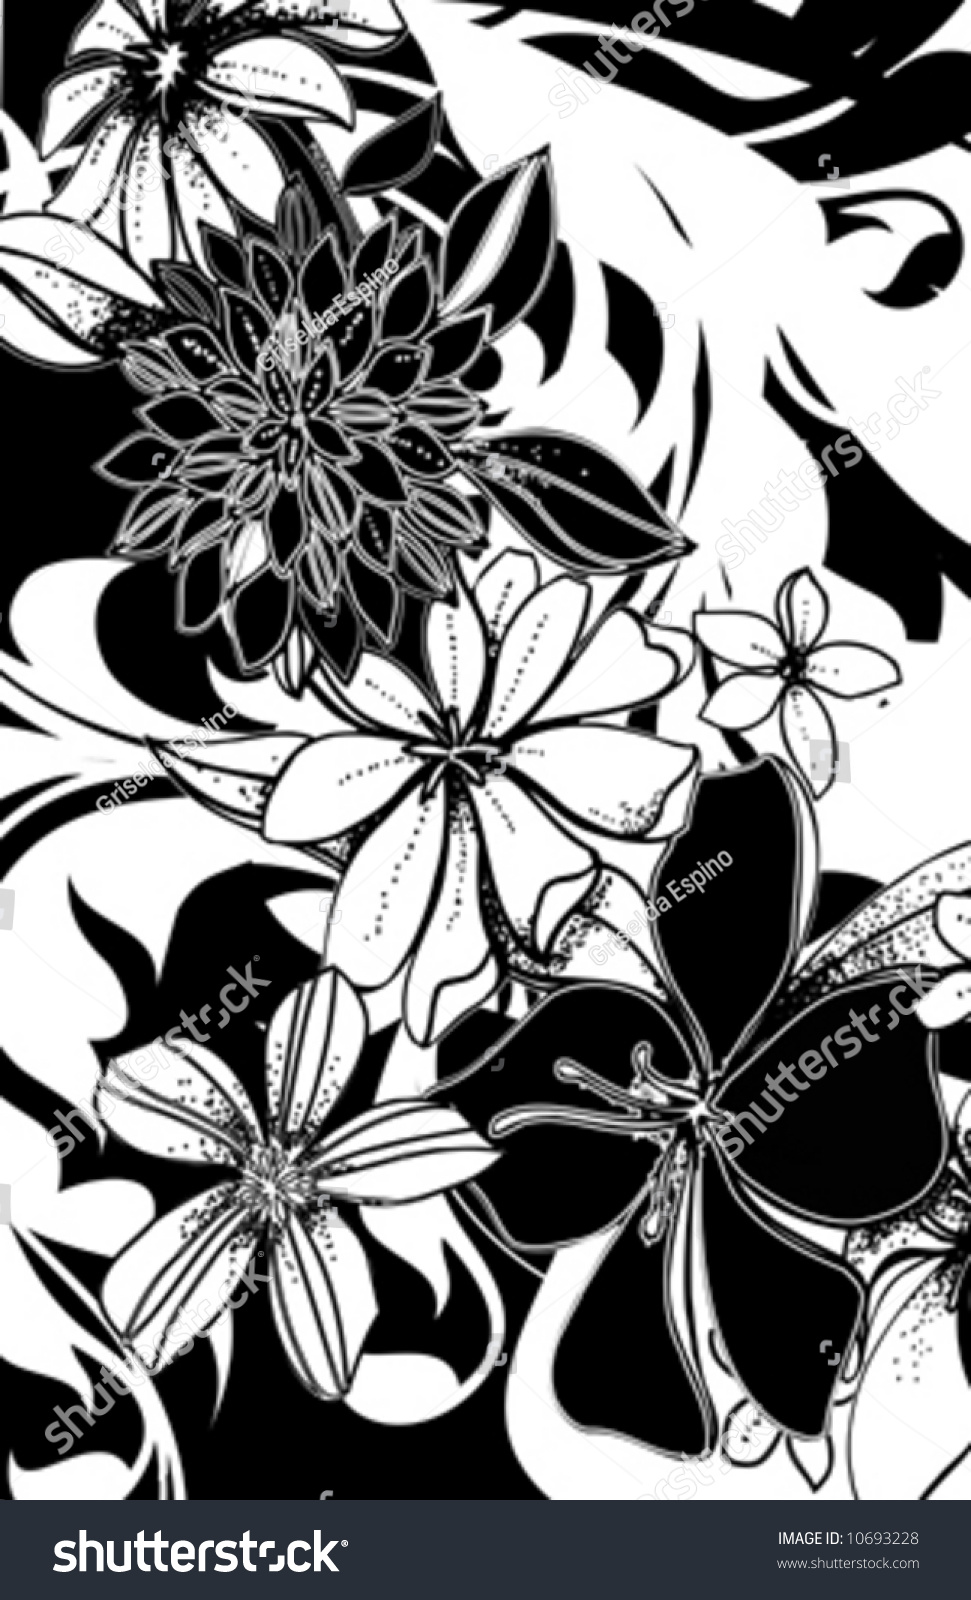 Black White Handdrawn Floral Print Whimsical Stock Vector Royalty